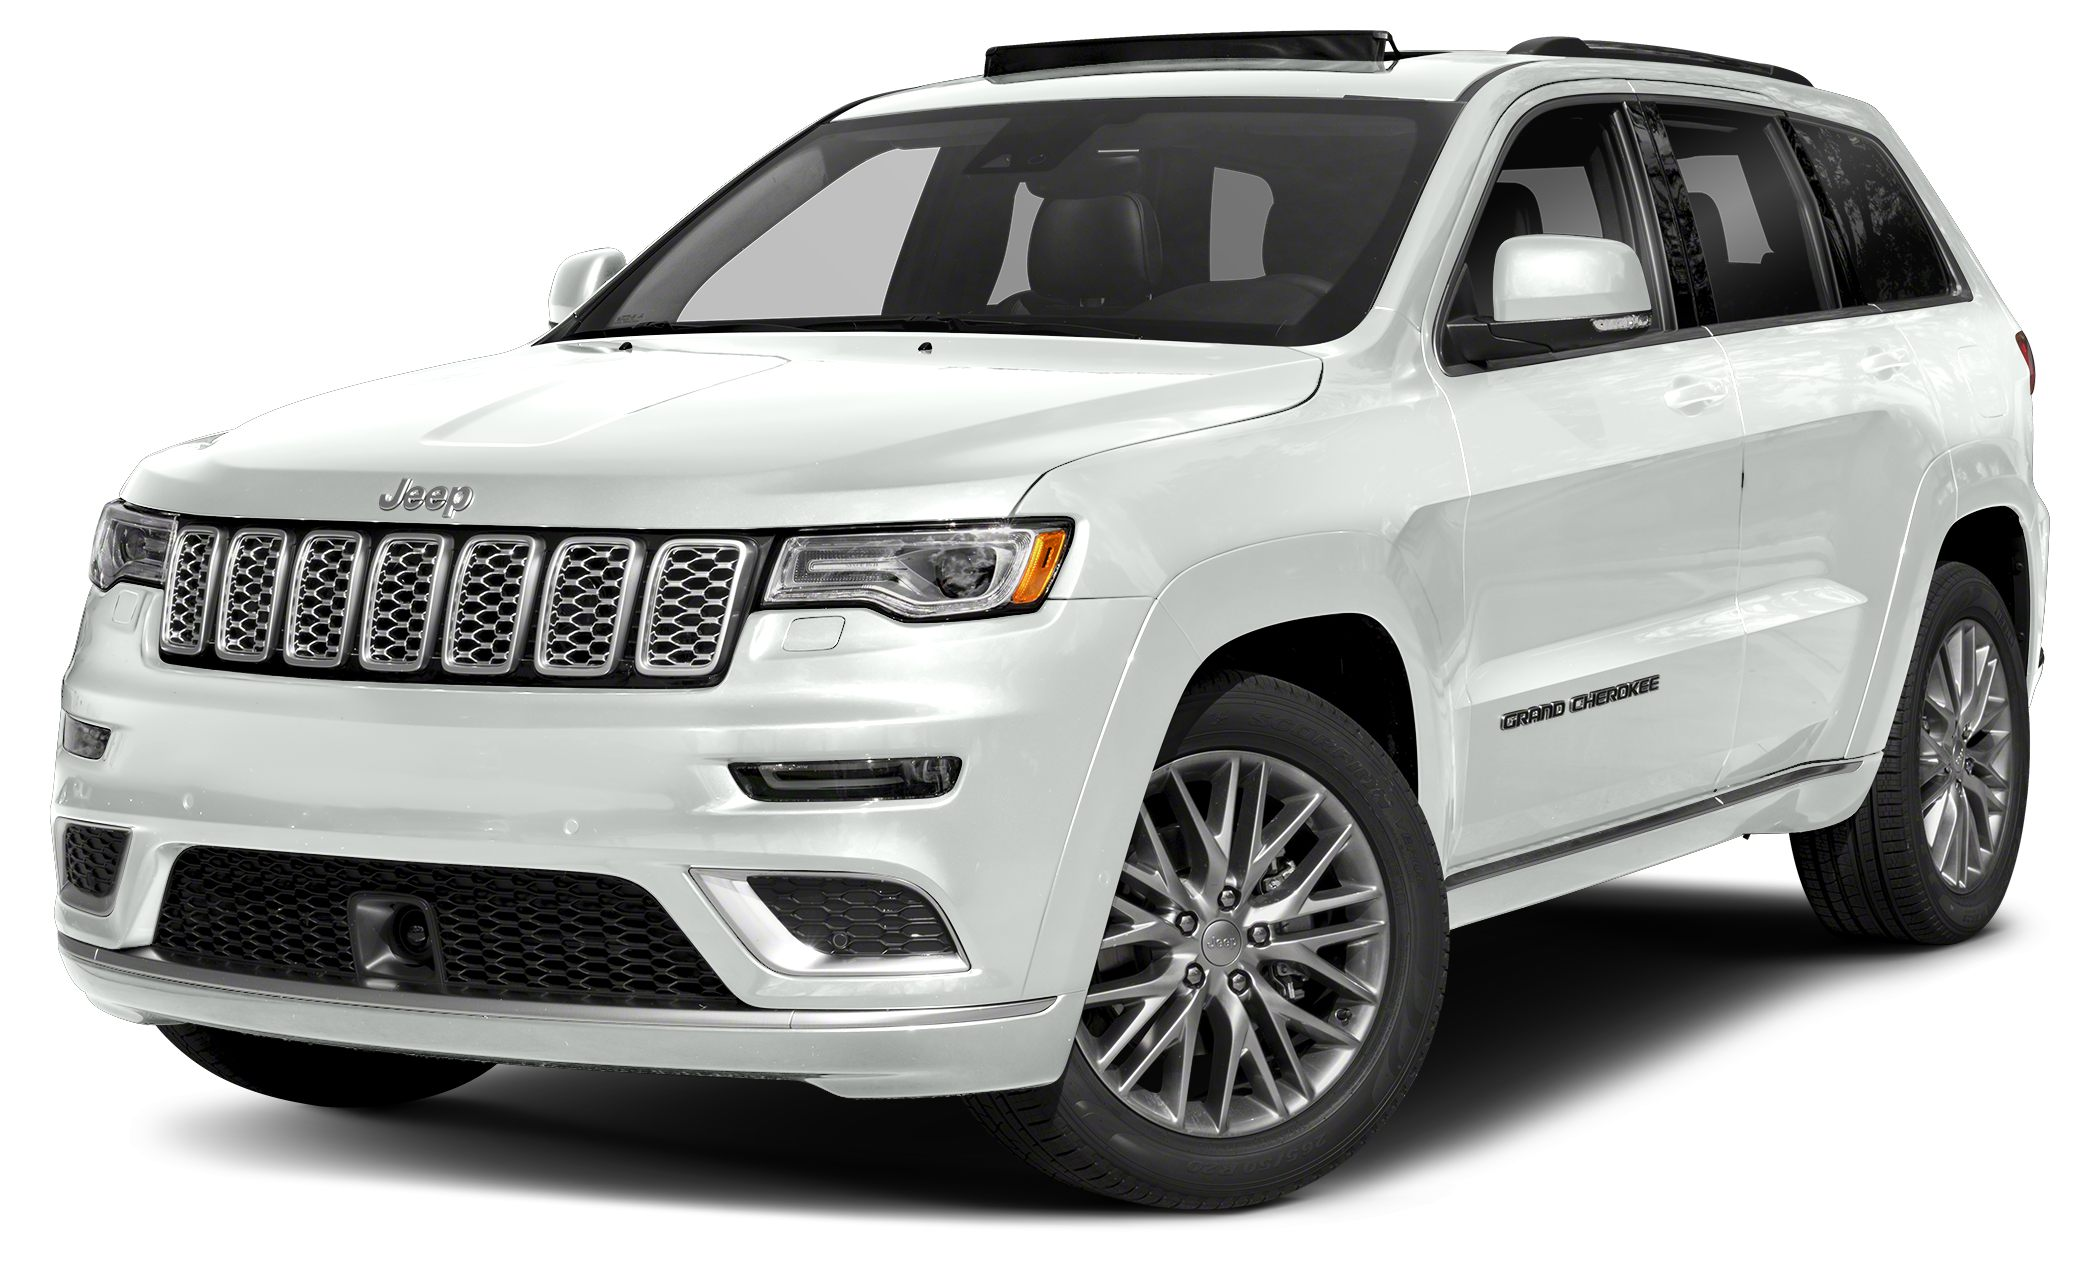 2017 Jeep Grand Cherokee Summit Here it is SAVE AT THE PUMP 22 MPG Hwy This solid Summit s